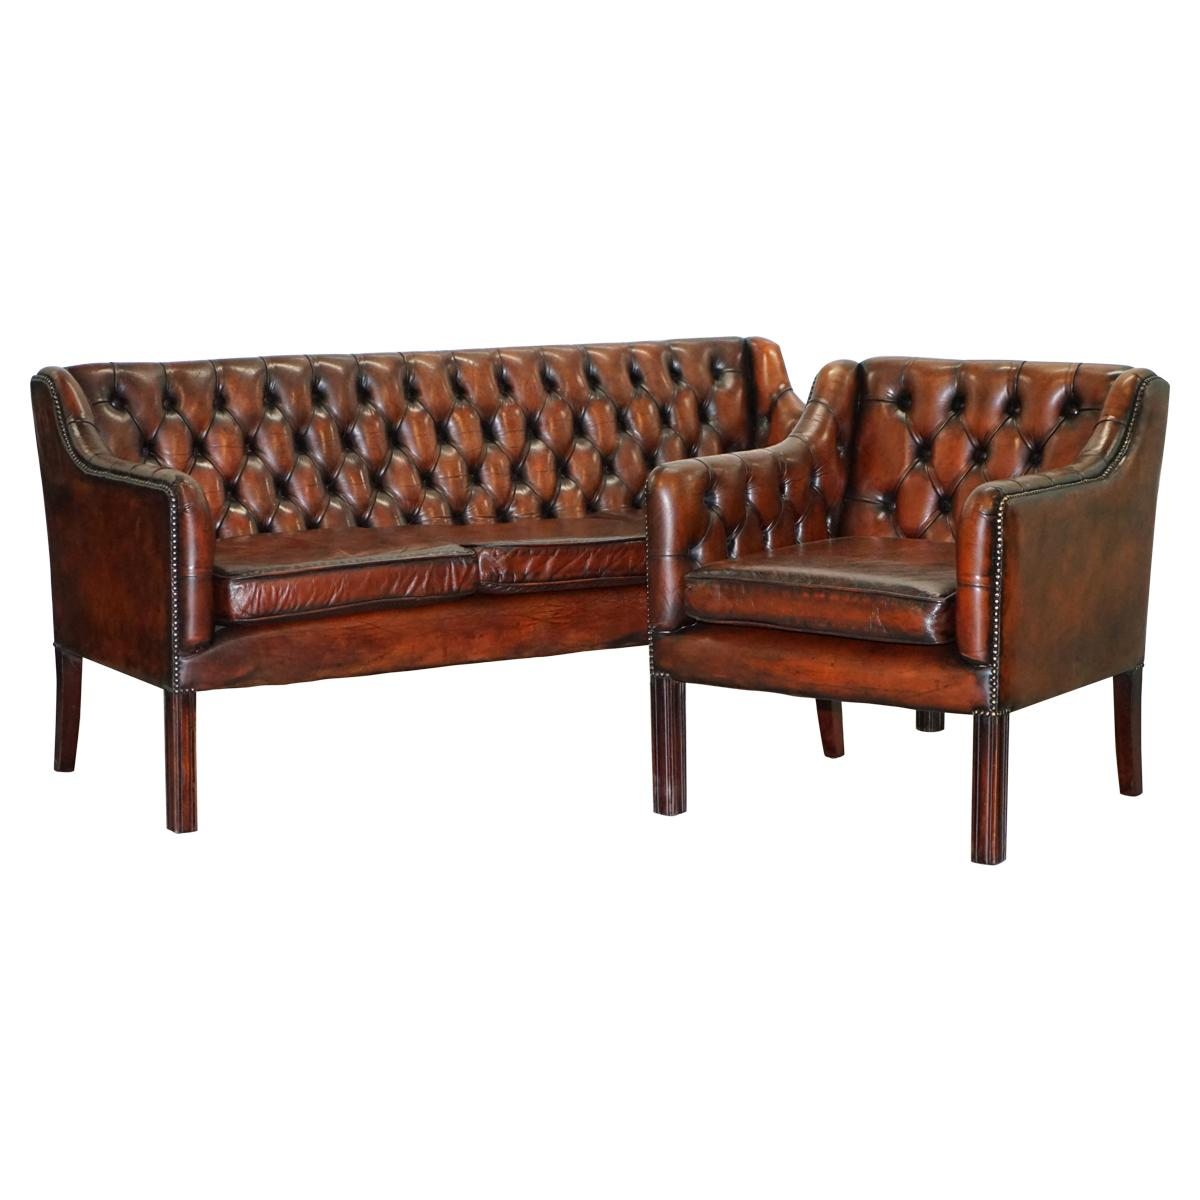 Vintage Restored Chesterfield Brown Leather Gun Suite 3-Seat Sofa and Armchair